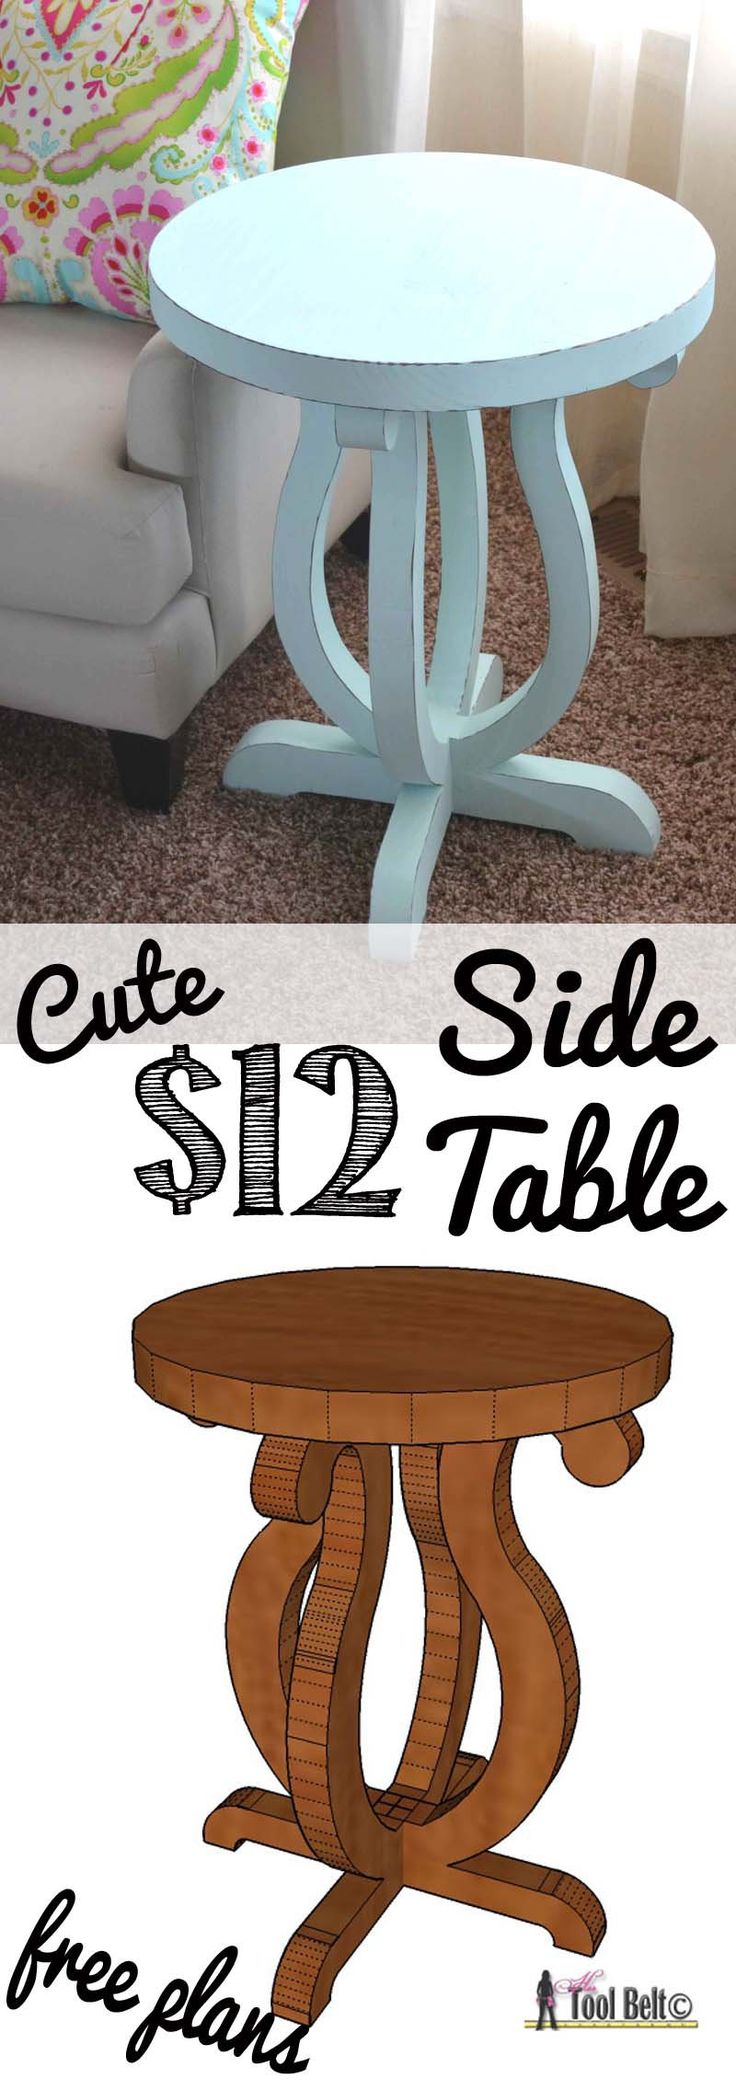 Build a cute side table from a